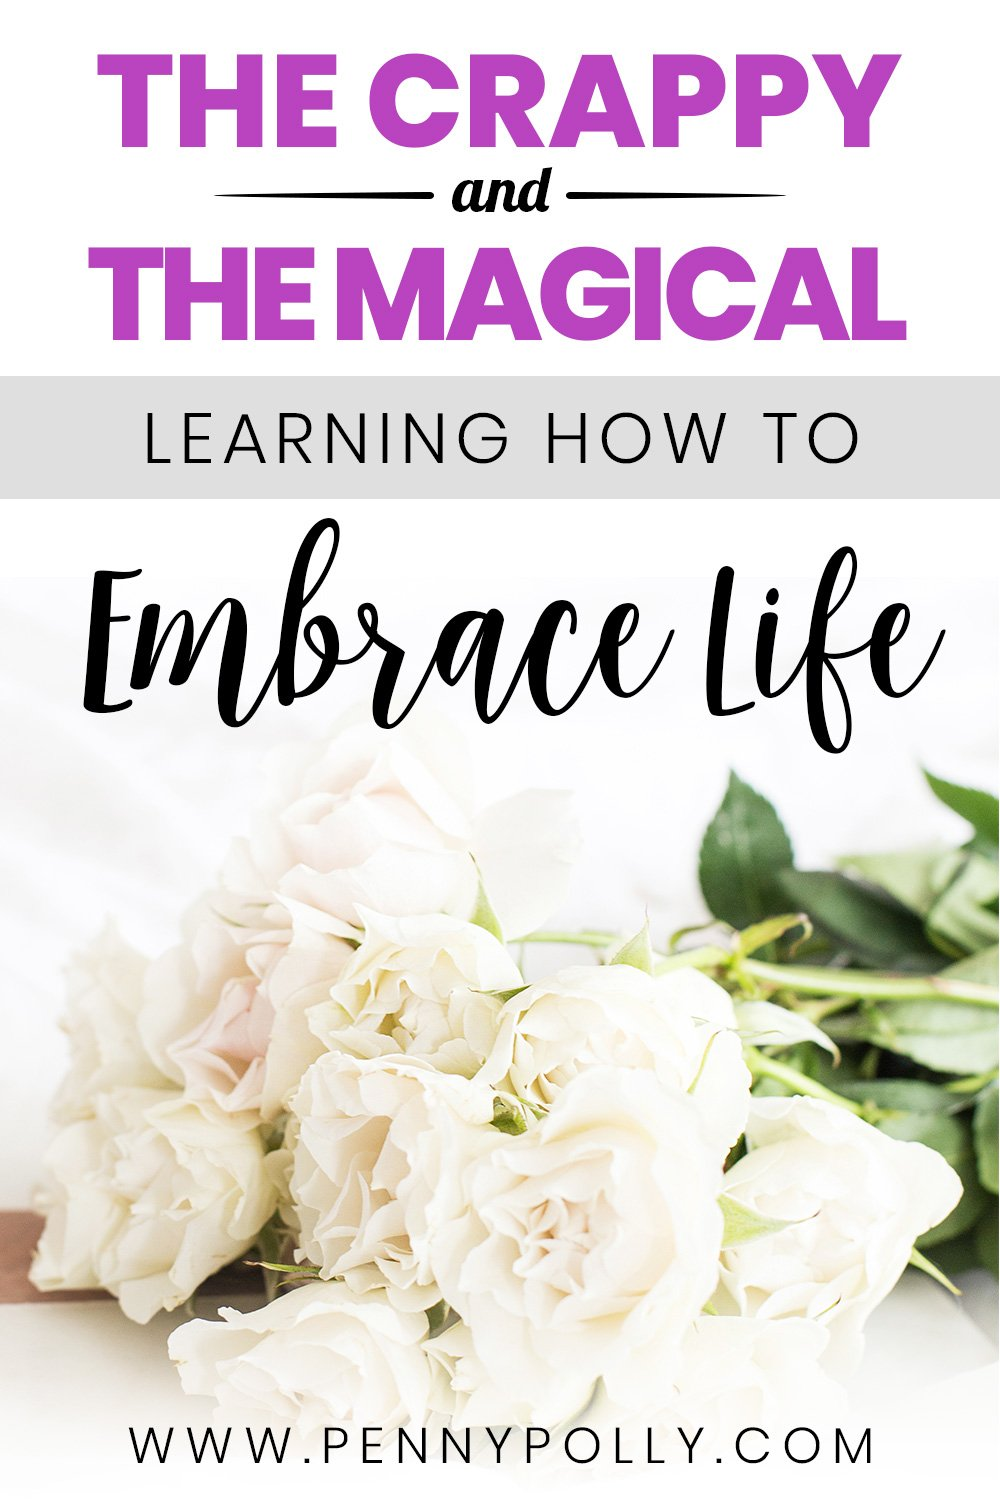 The Crappy and The Magical: Learning How to Embrace Life